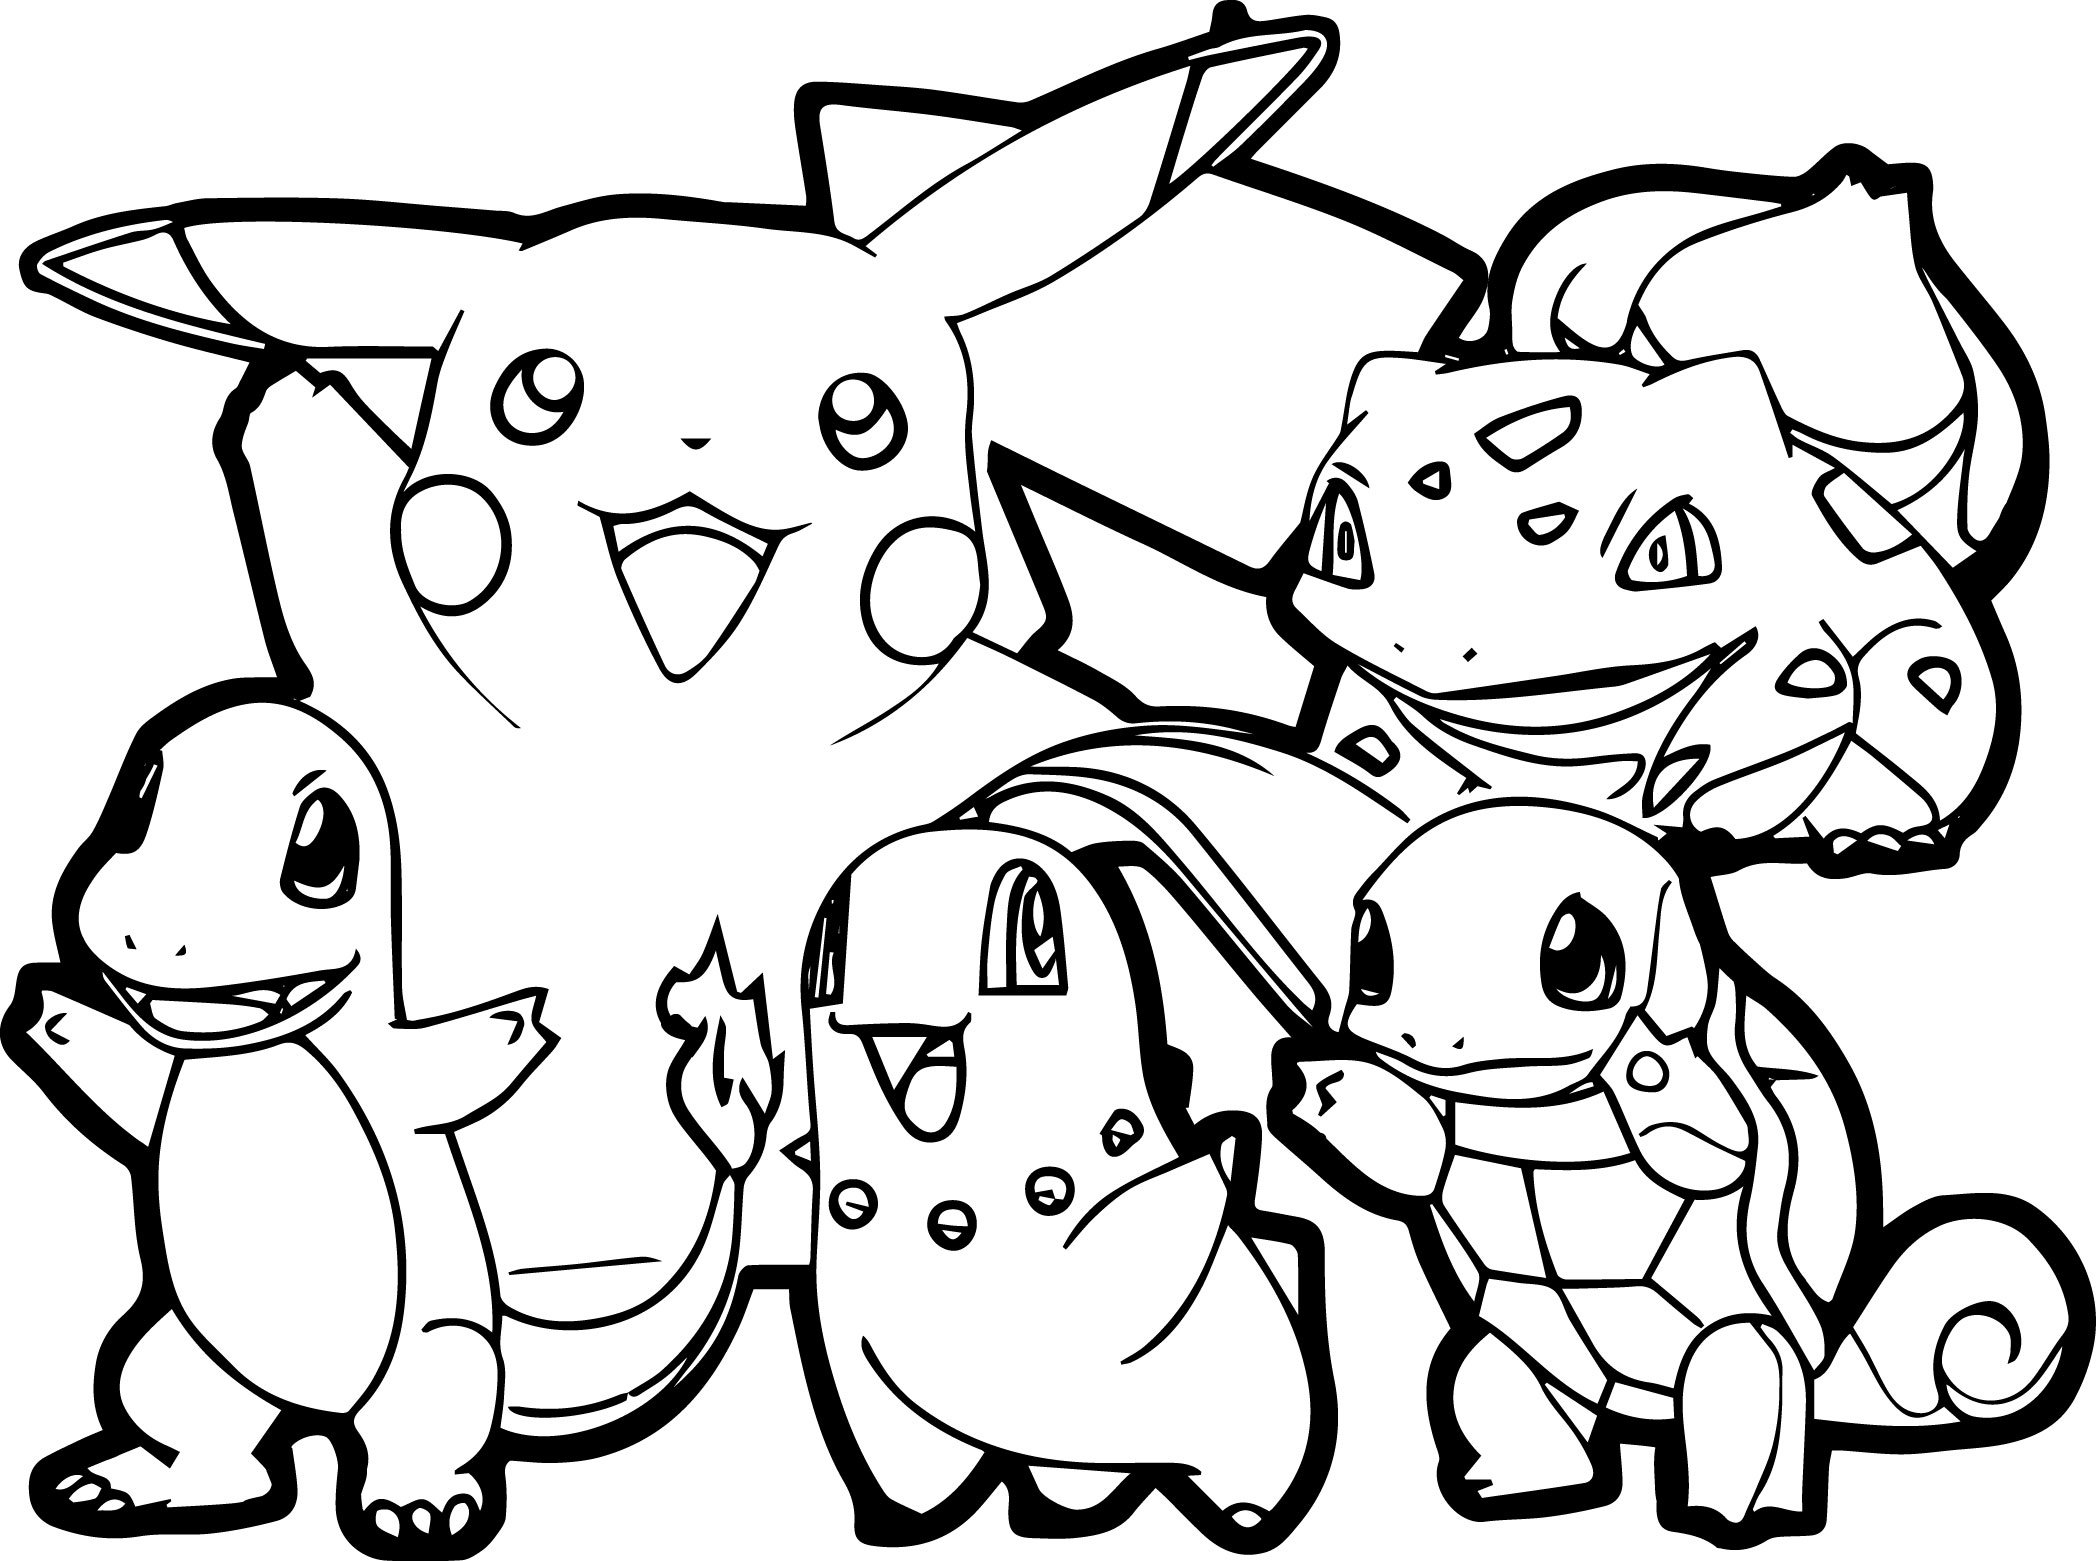 2096x1561 Special Coloring Pages Of Pokemon Perfect Lol